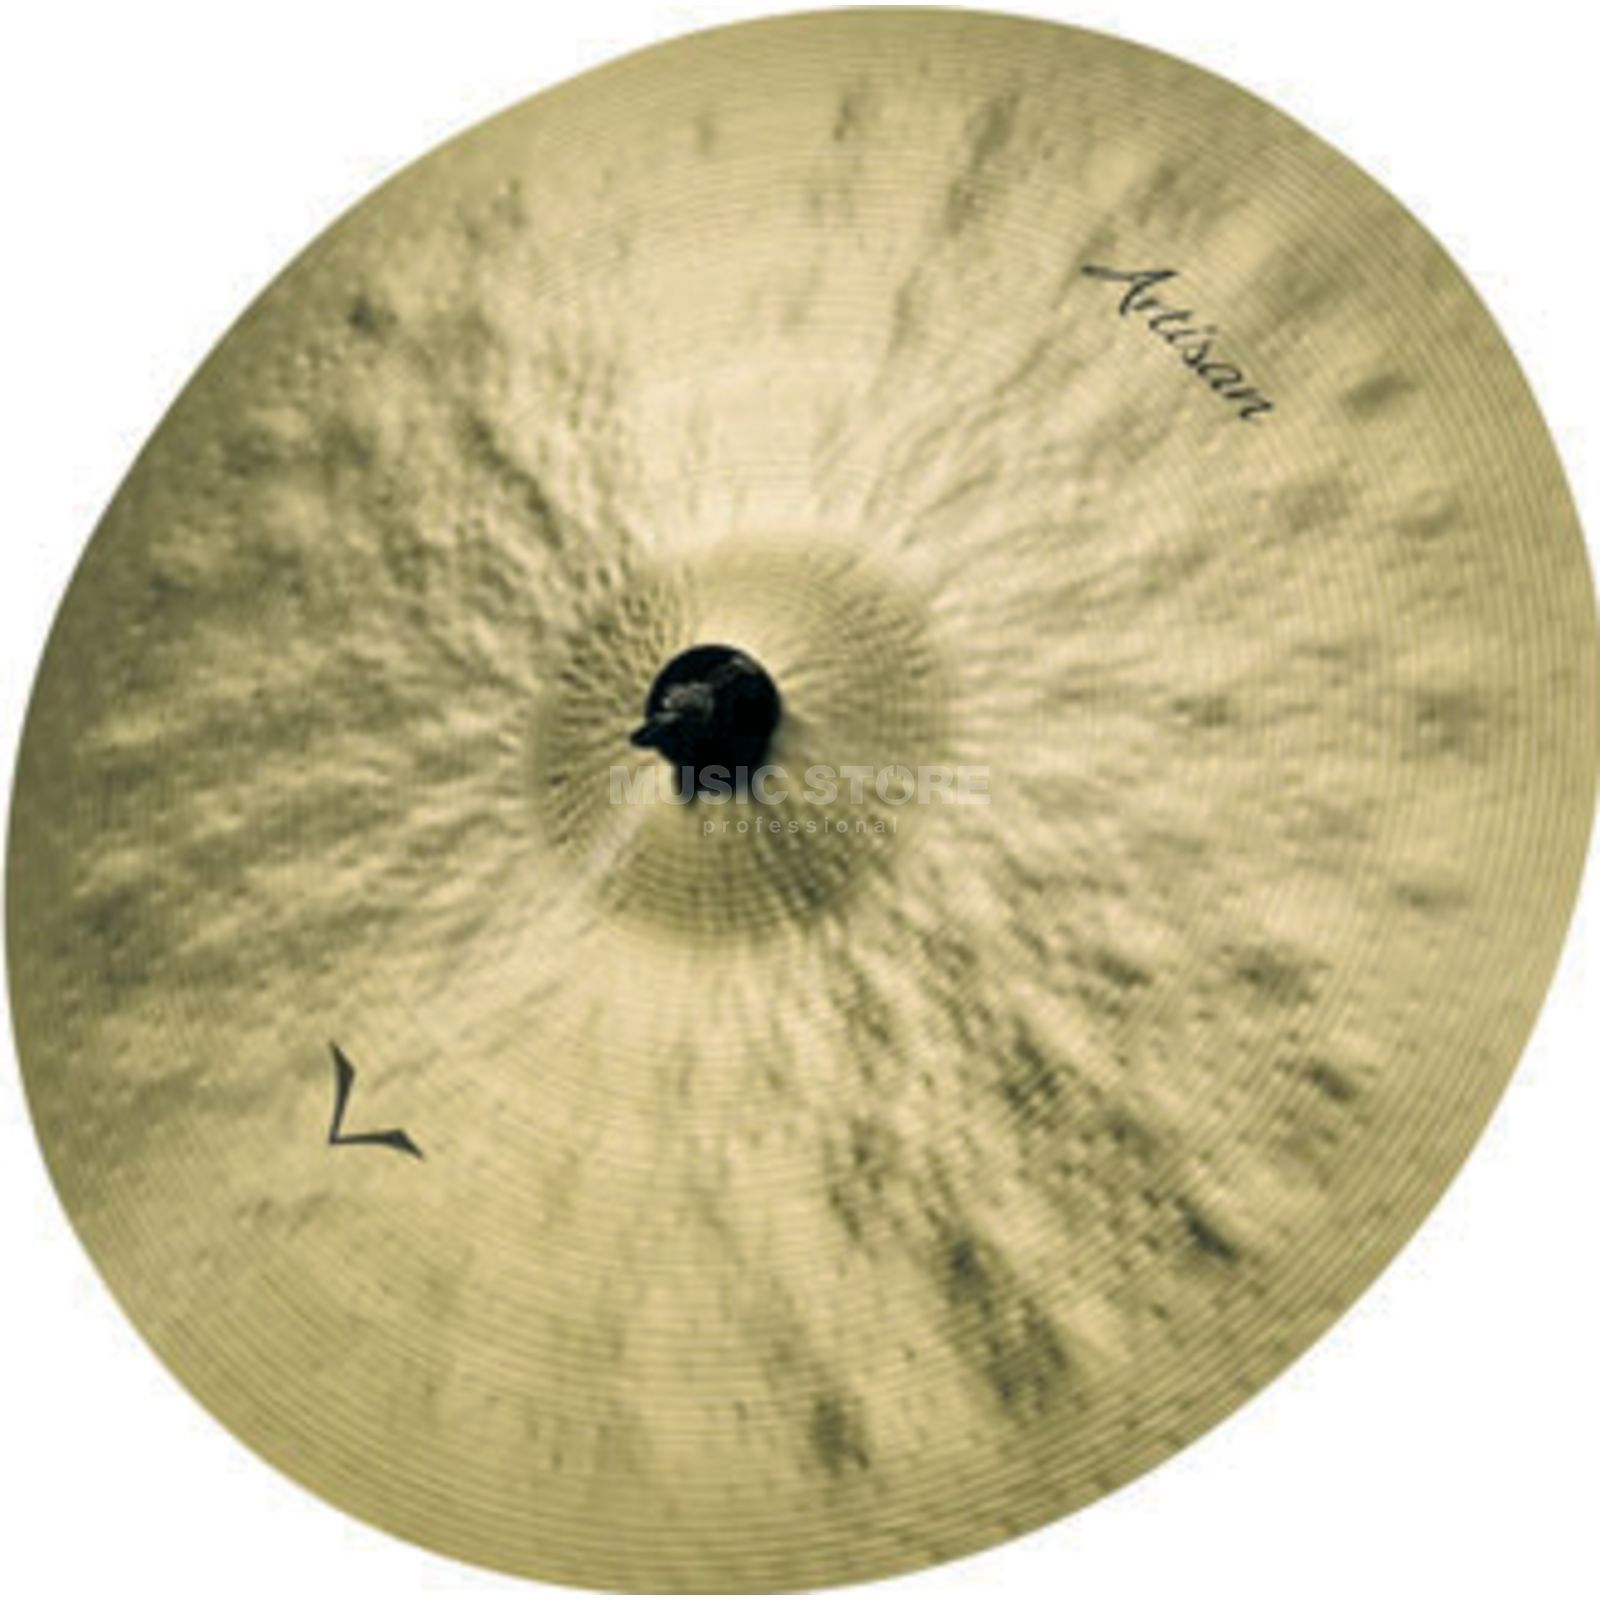 "Sabian Vault Artisan Medium Ride 20"" Brilliant, B-Stock Zdjęcie produktu"